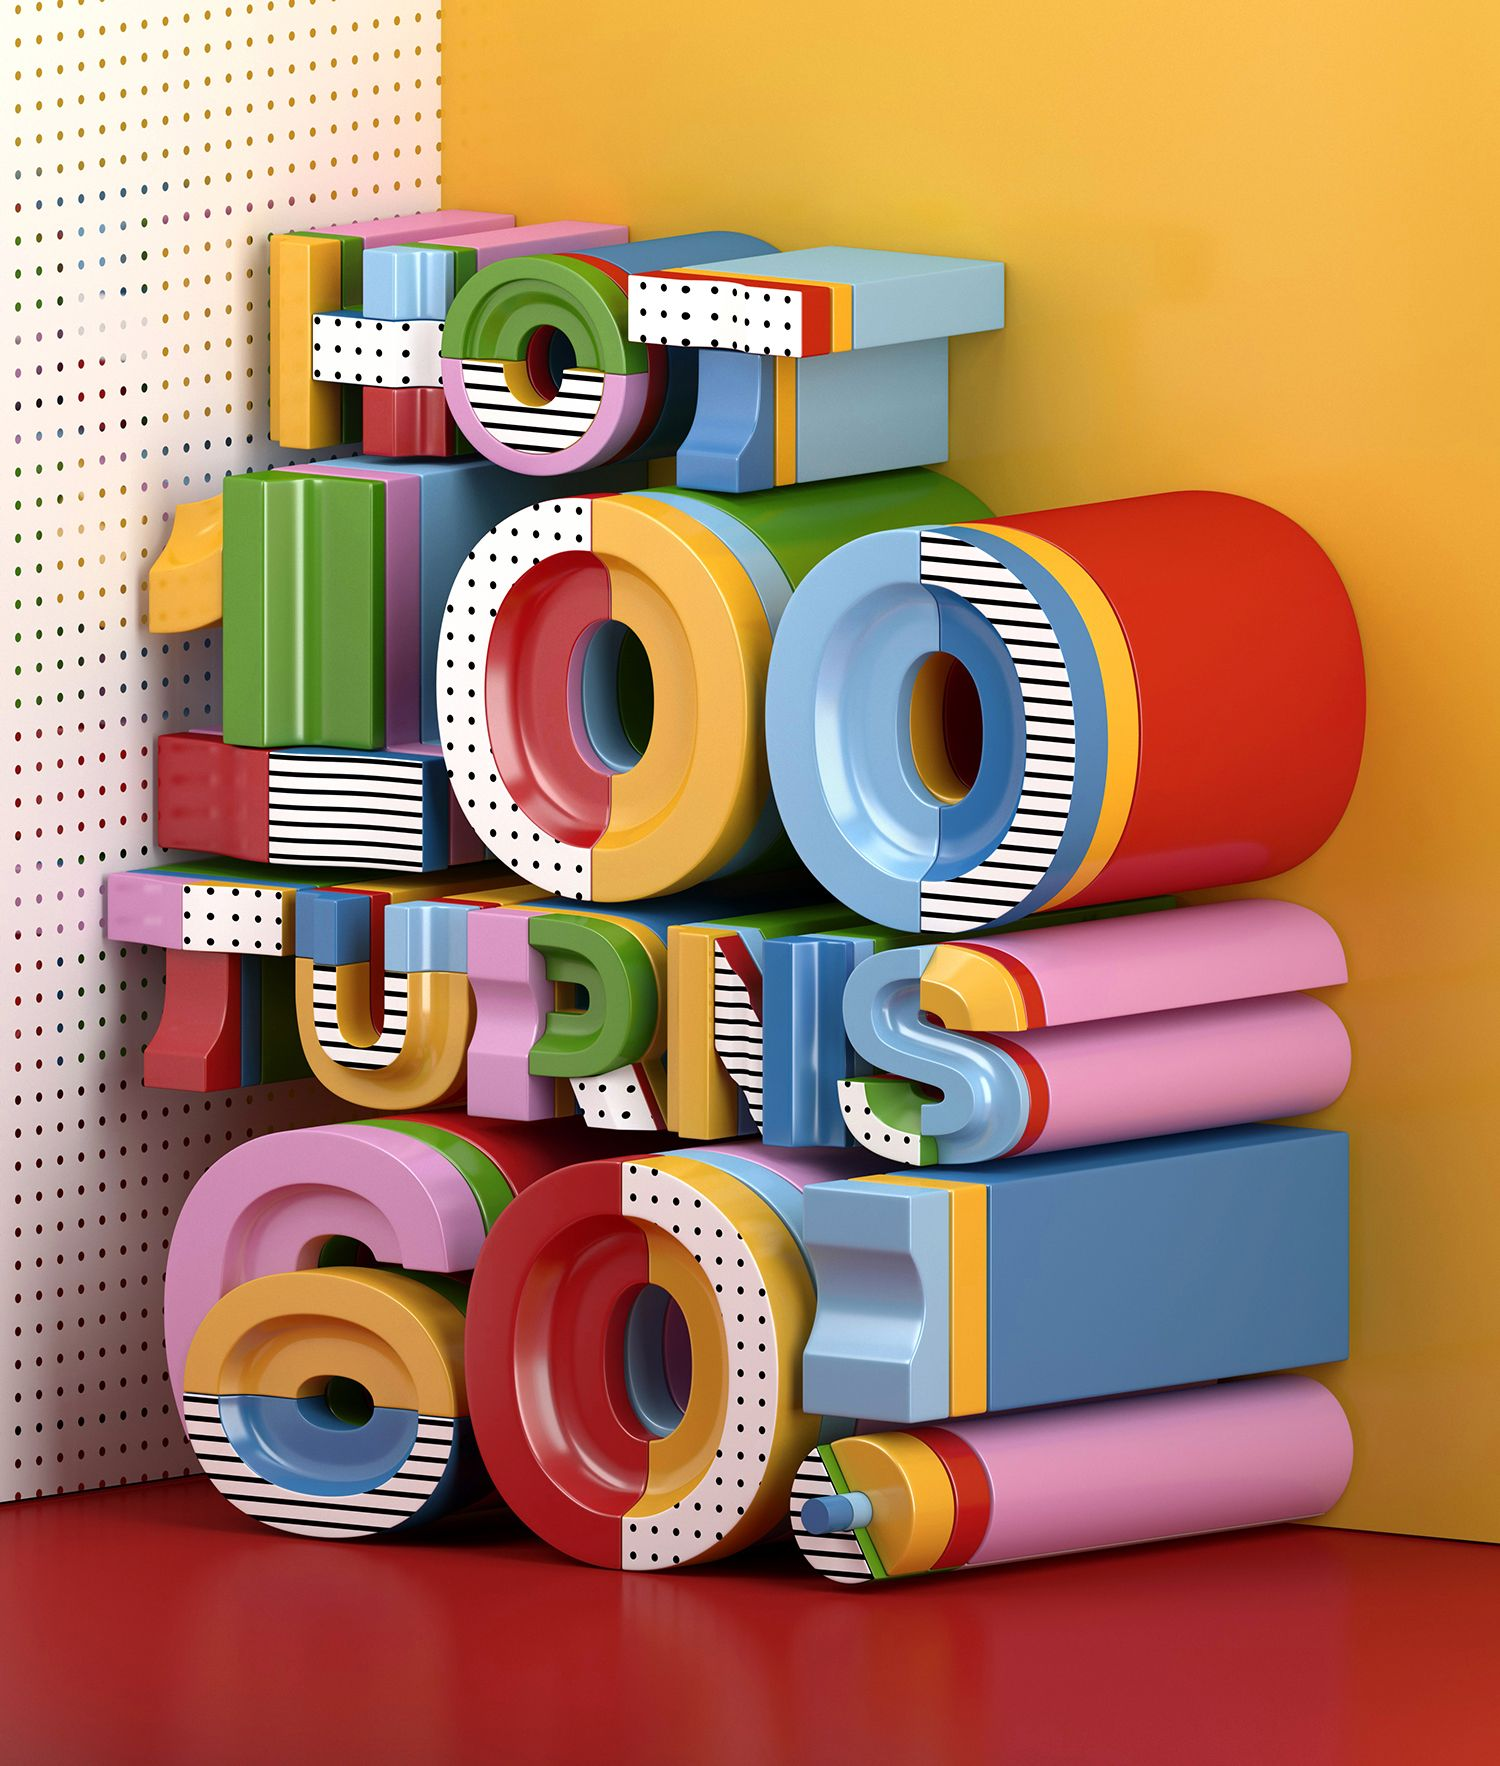 Joyful Typography Design #3dtypography